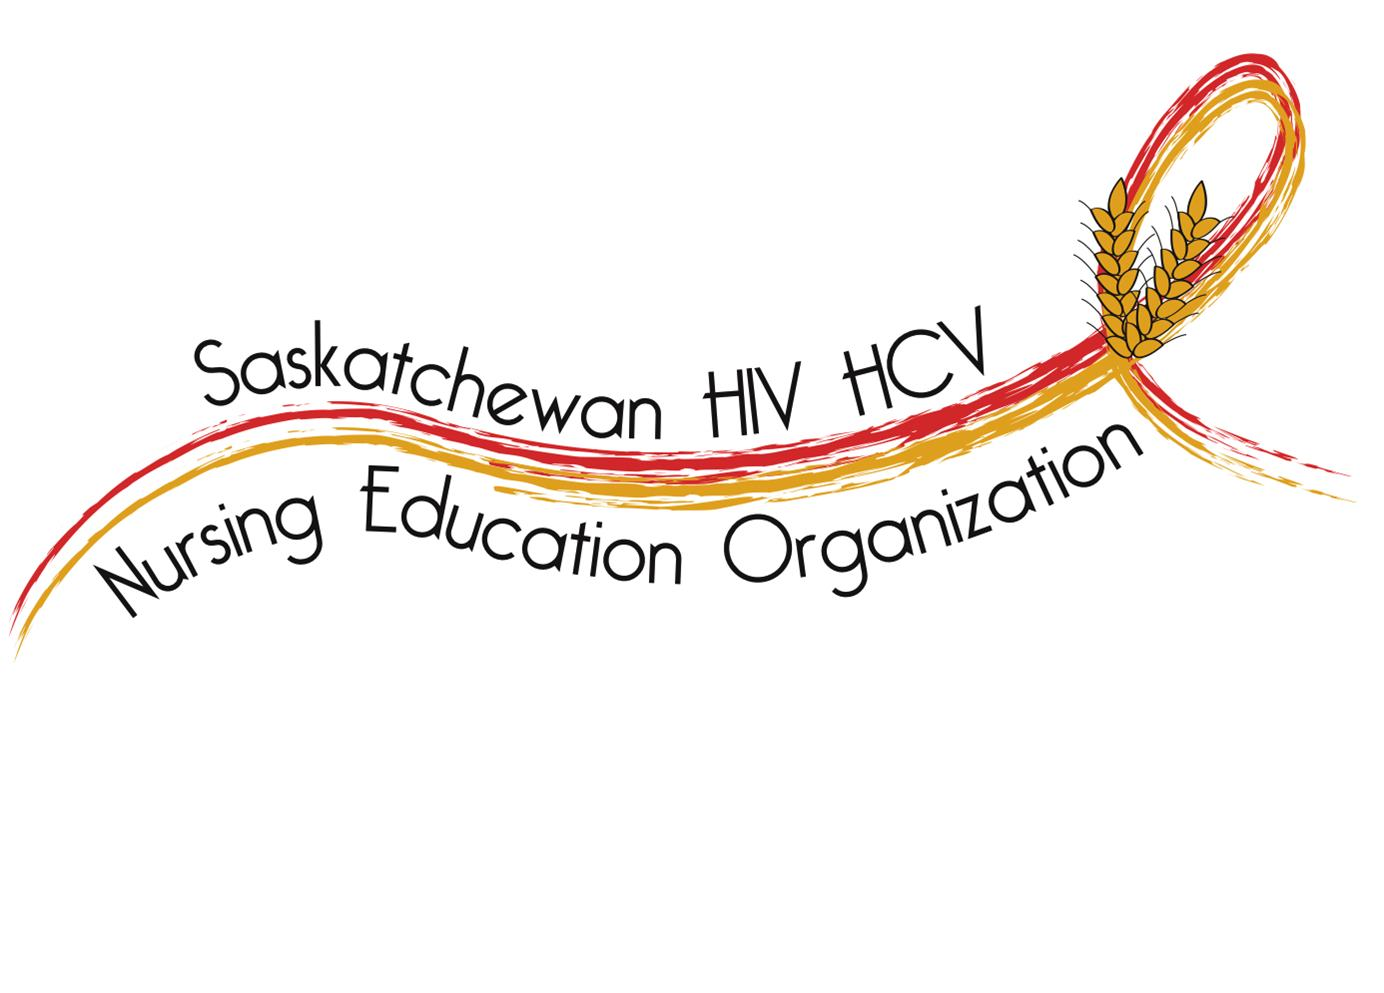 Saskatchewan HIVHCV Nursing Education Organization